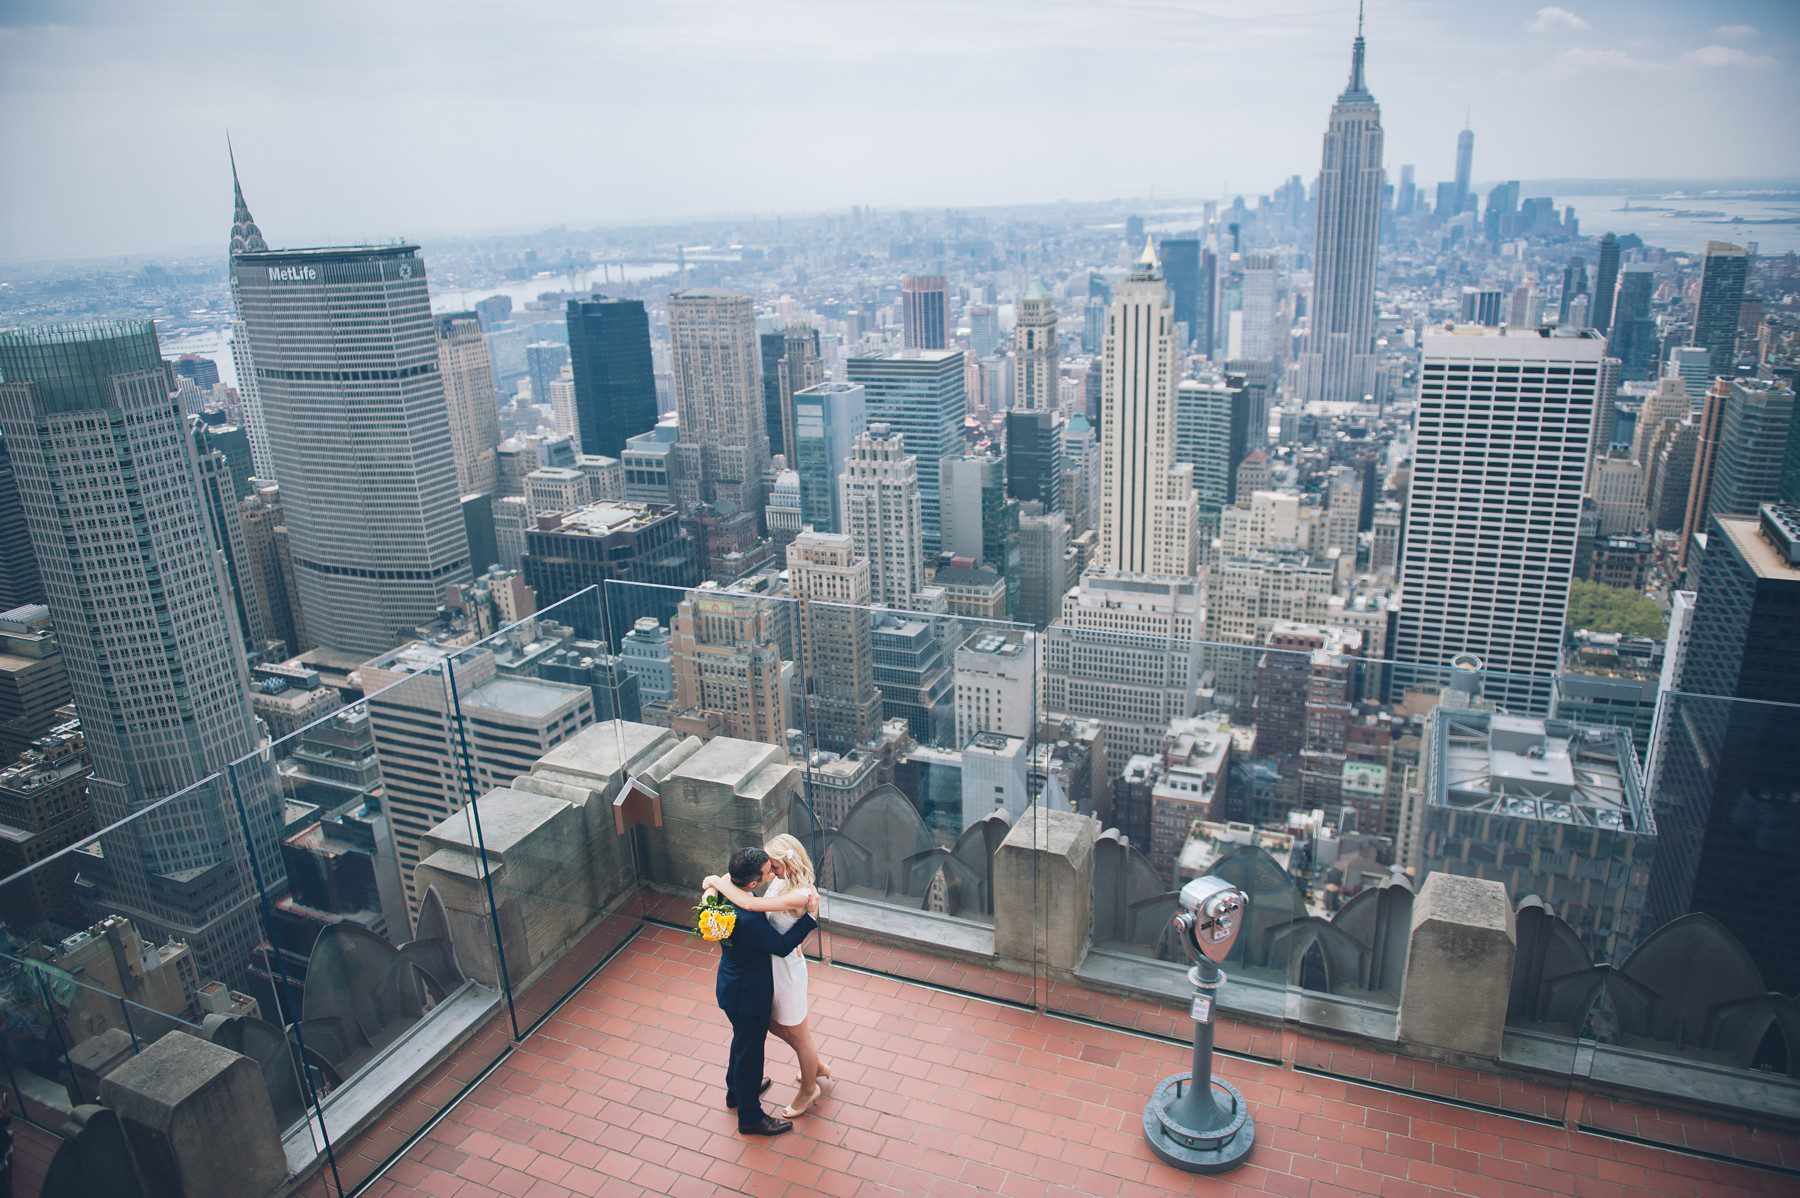 Hochzeit New York Rockefeller Center Elopement Top Of The Rock Hochzeit